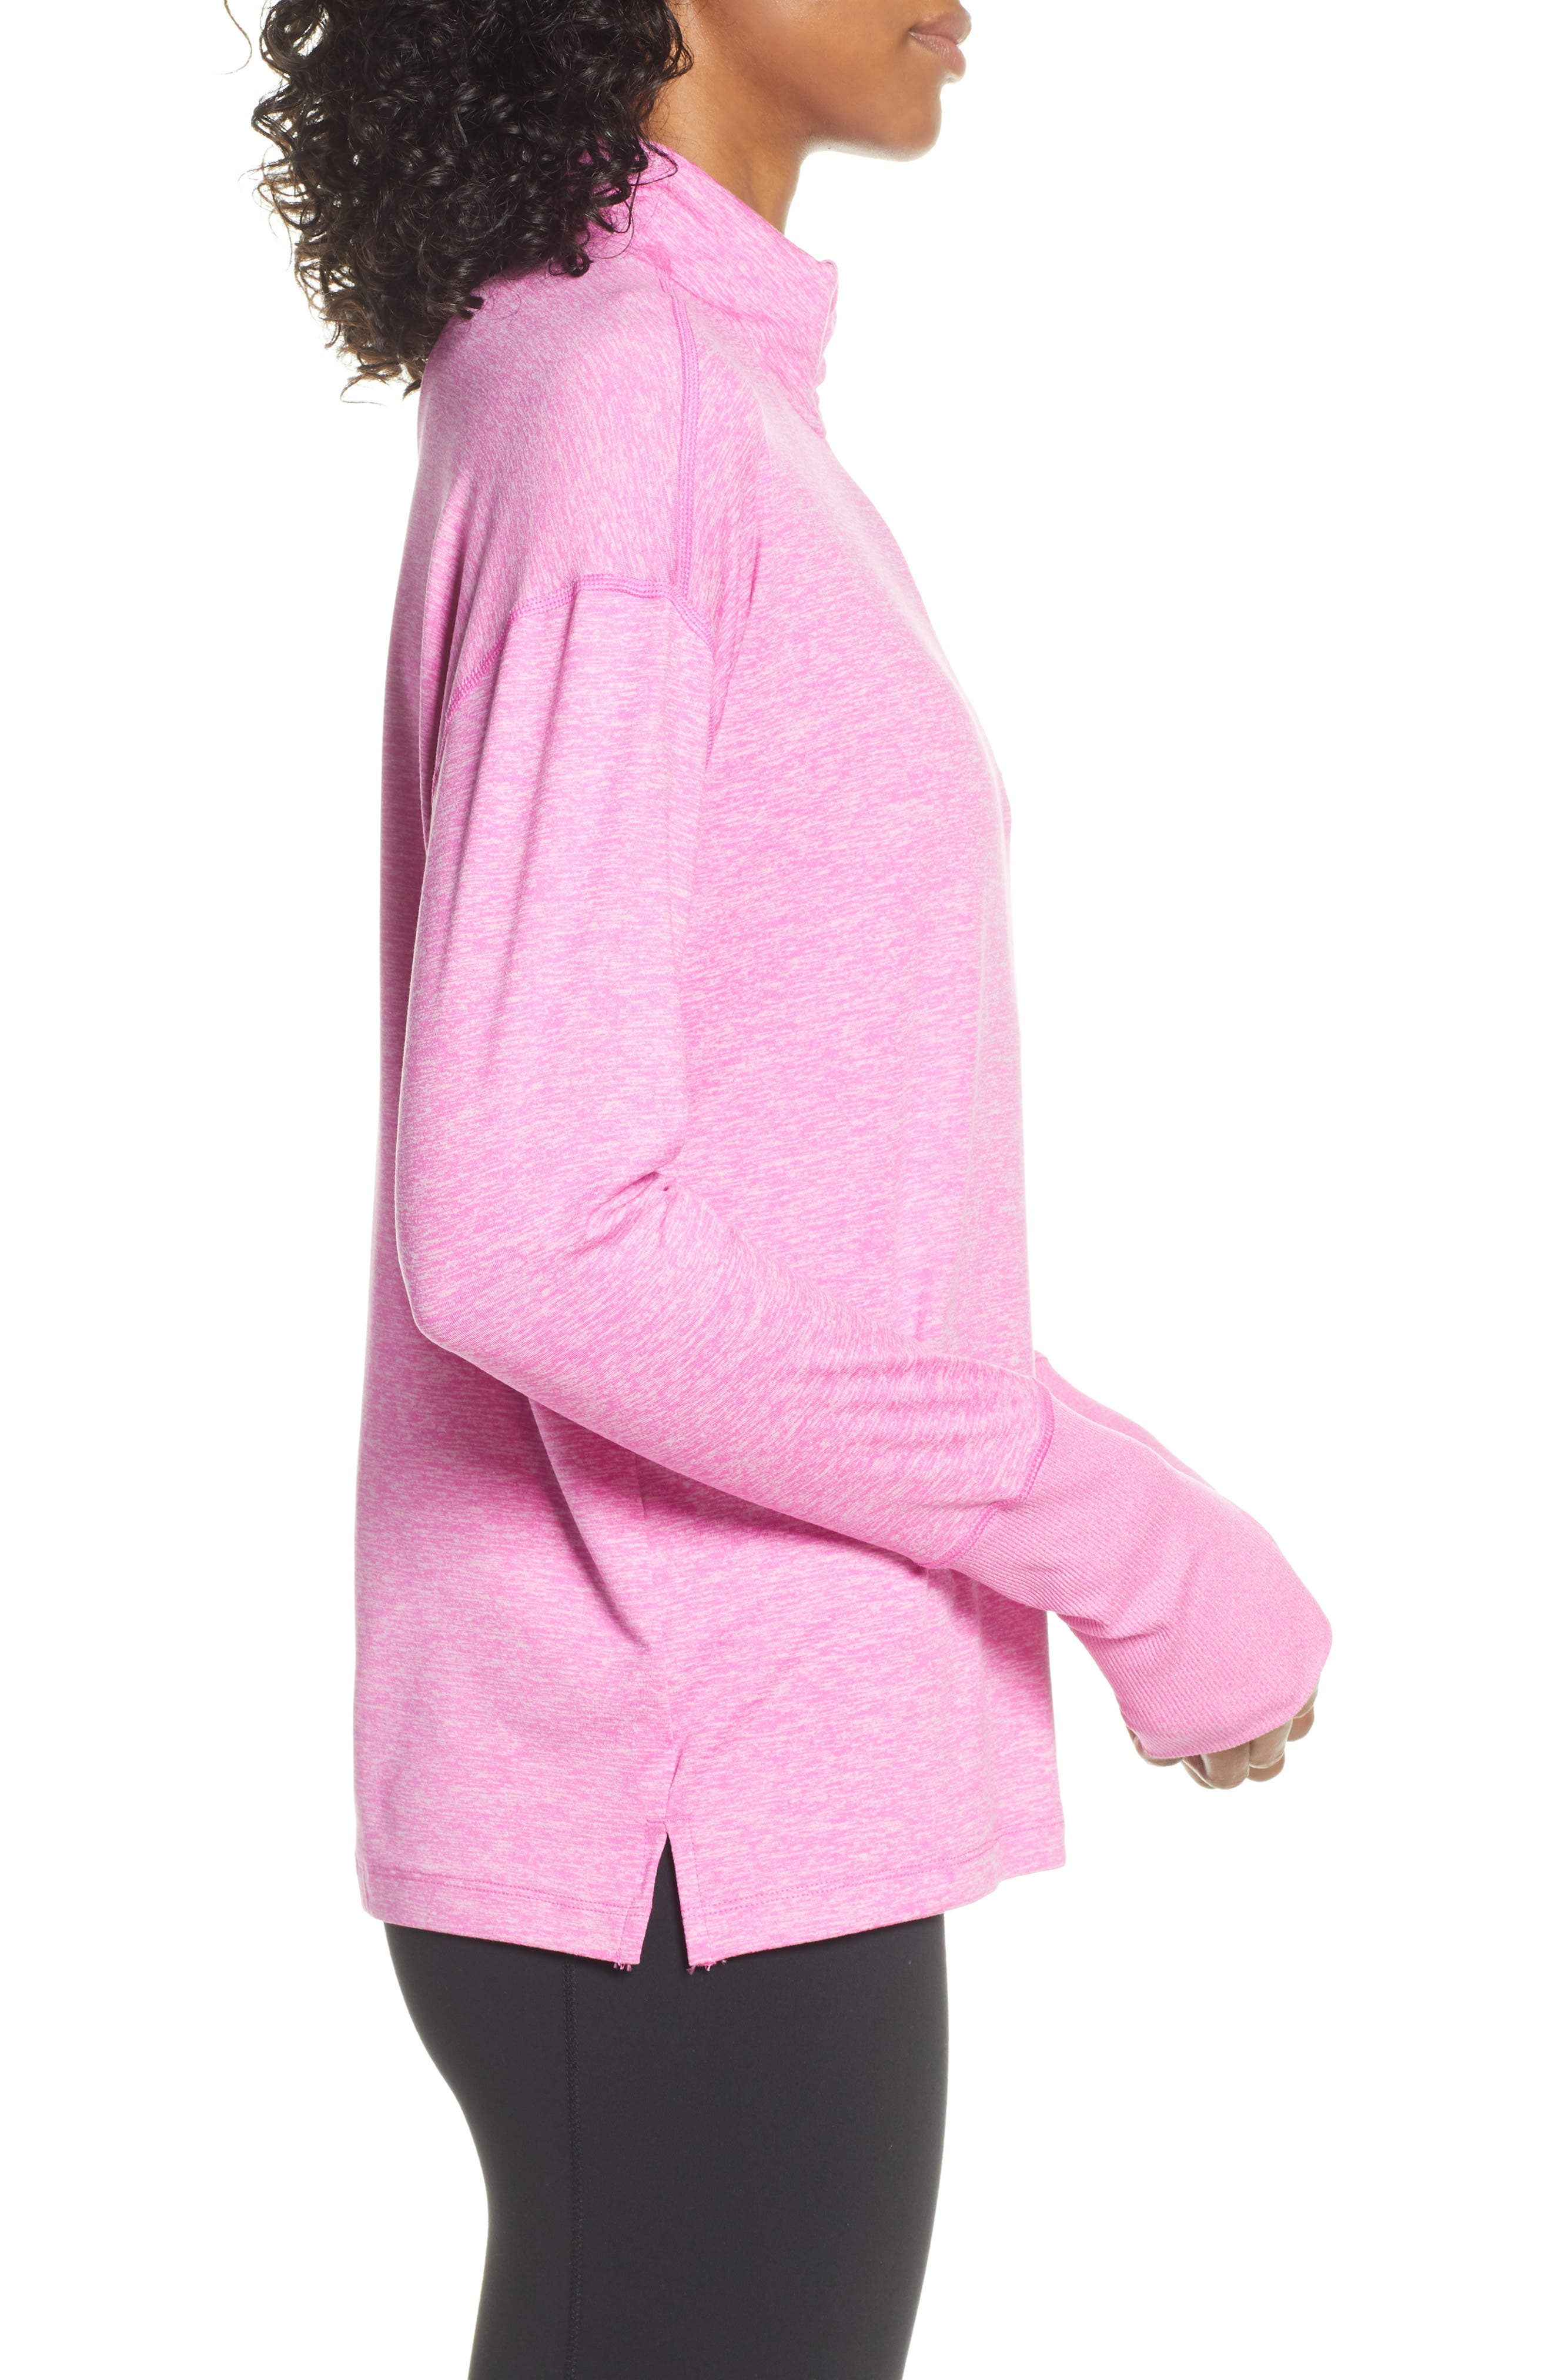 NIKE, Element Long-Sleeve Running Top, Alternate thumbnail 4, color, ACTIVE FUCHSIA/ PINK RISE